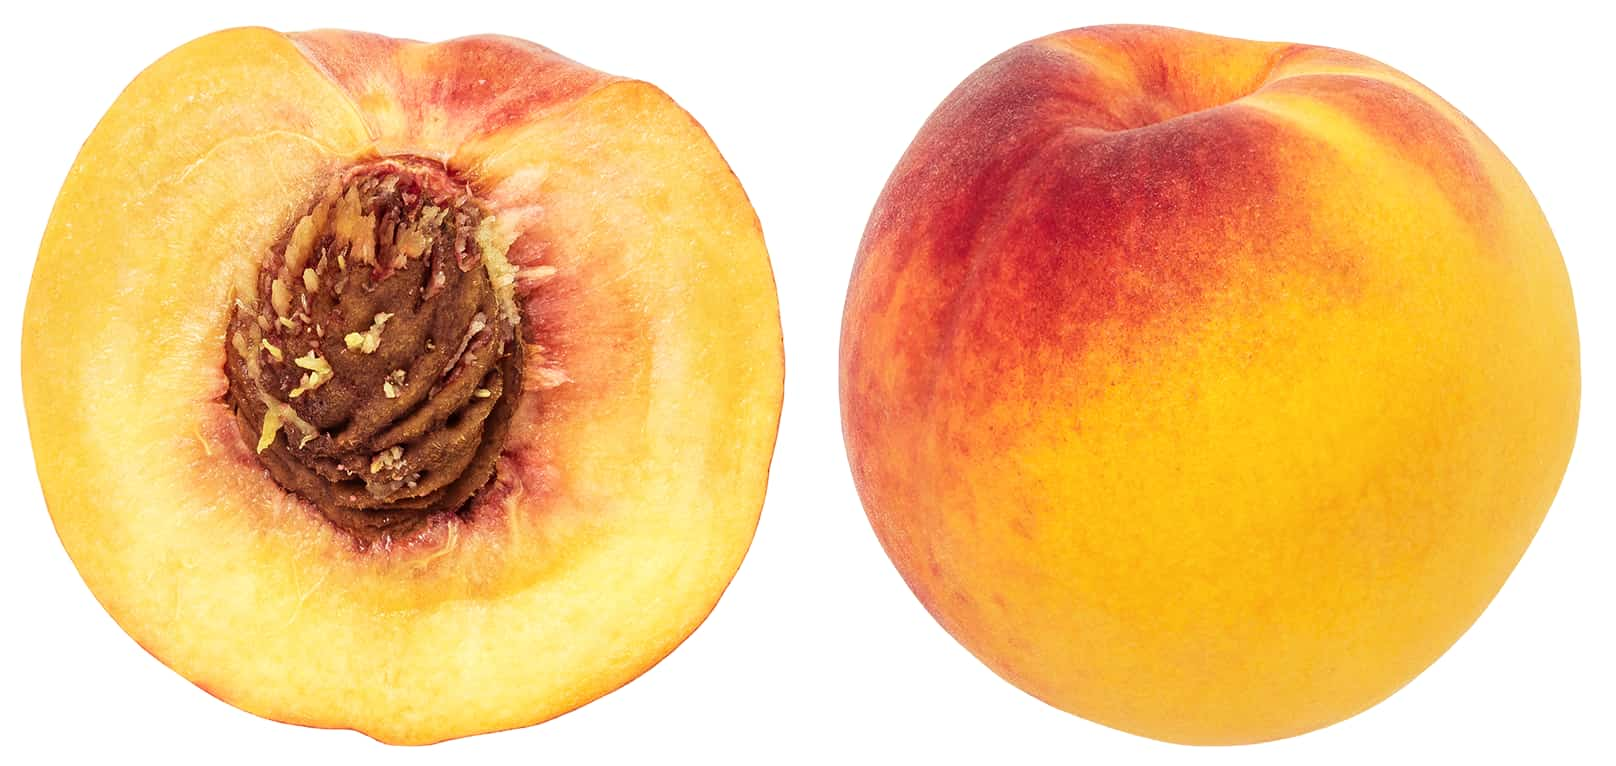 image of peach